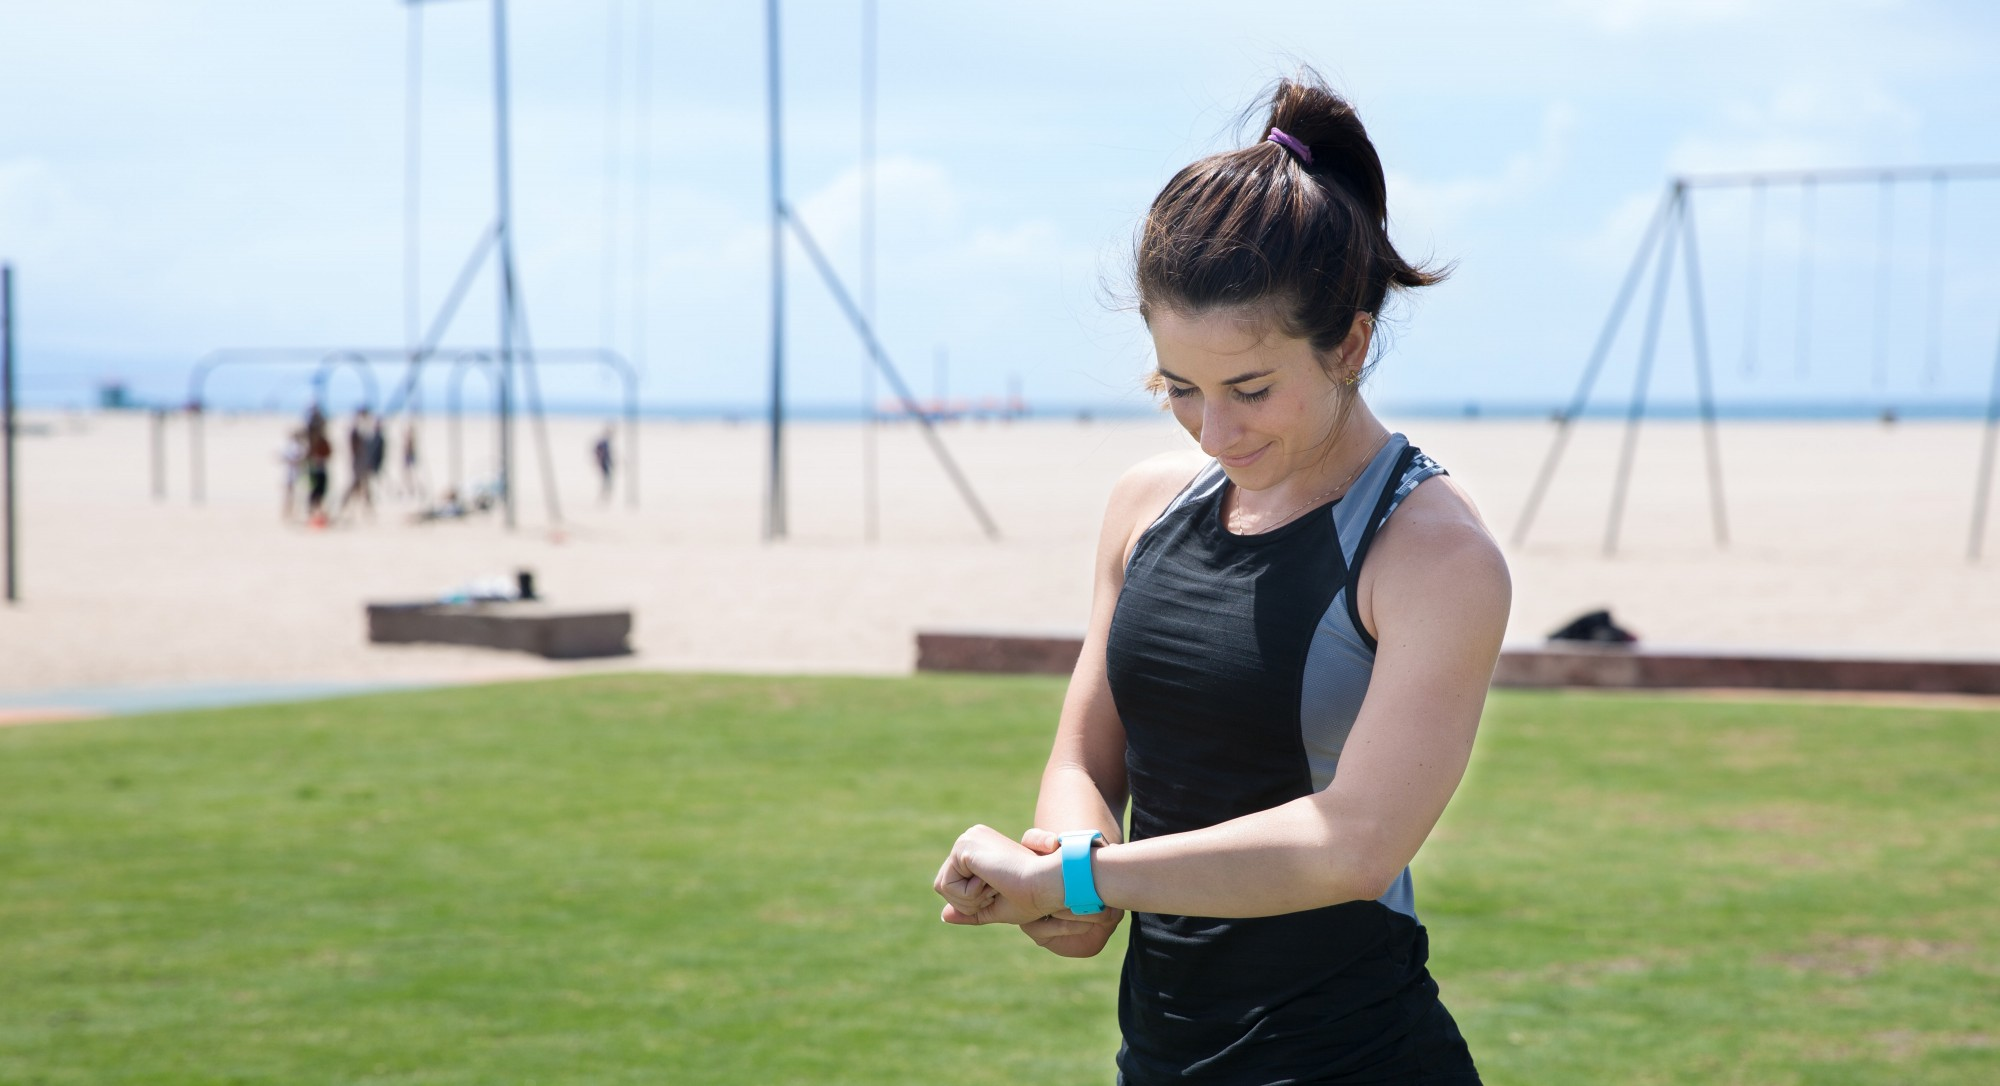 Are Activity Trackers a Waste of Money? Depends.